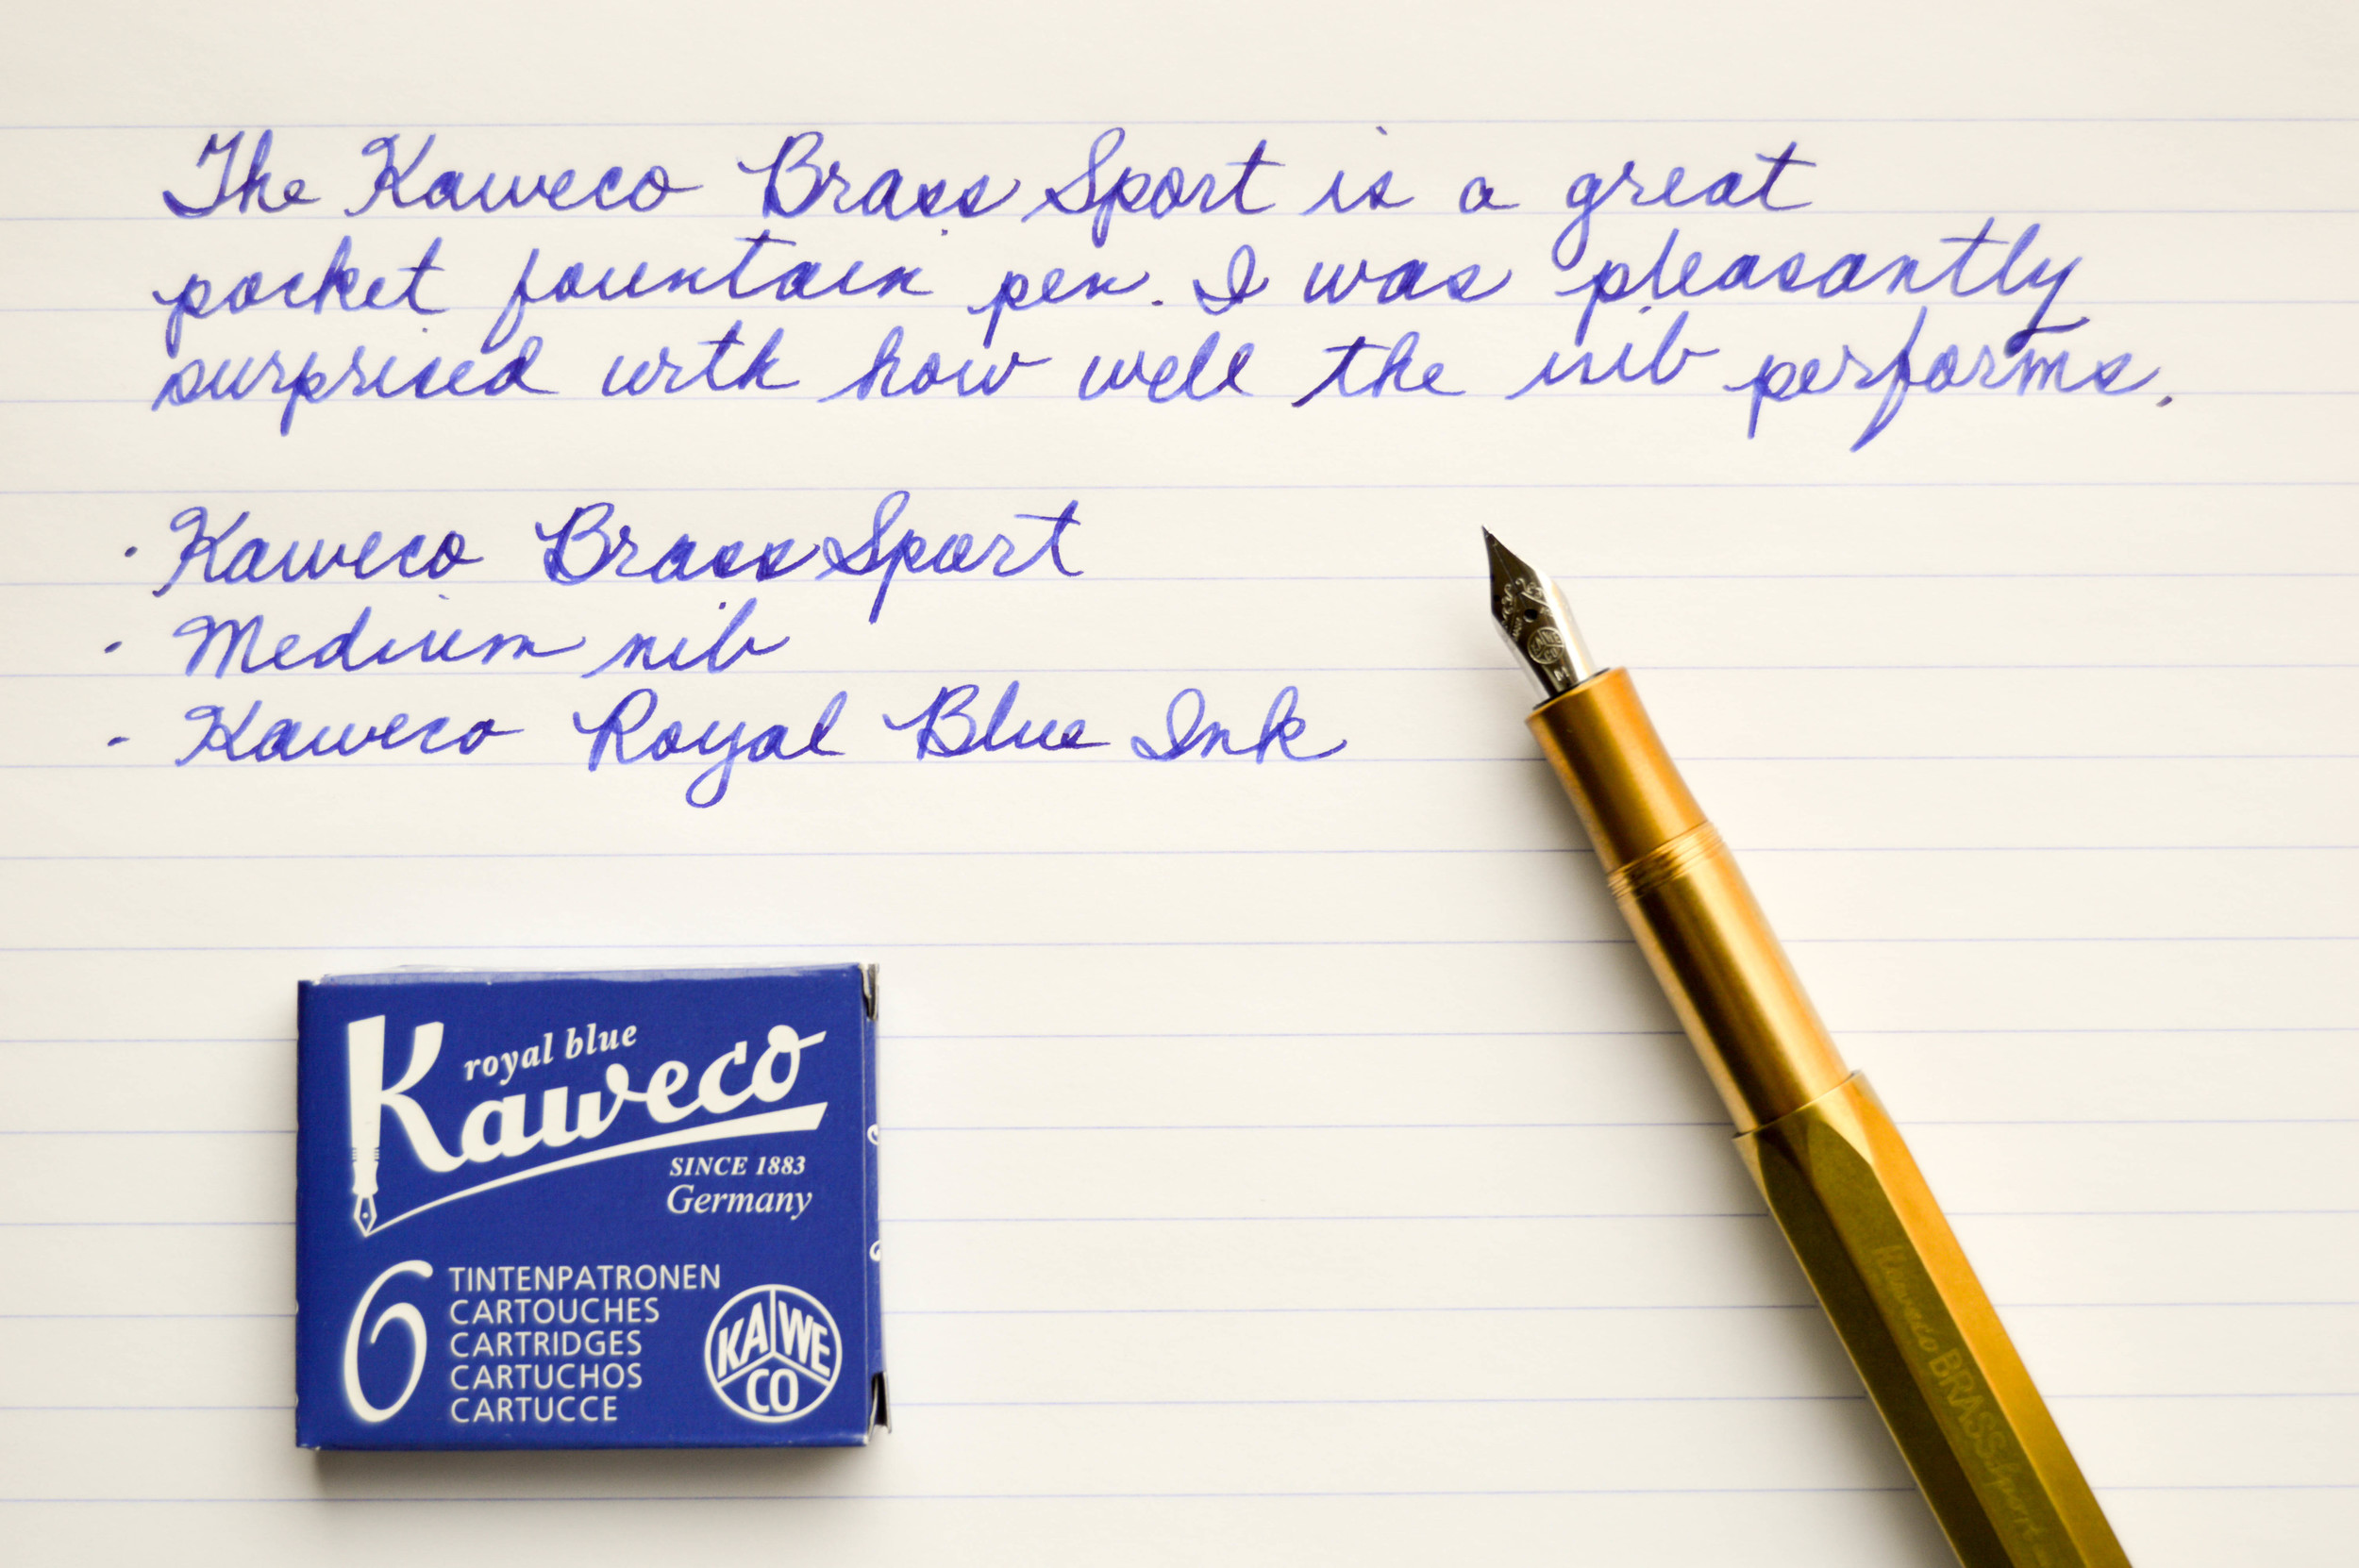 Writing sample using Kaweco Royal Blue.